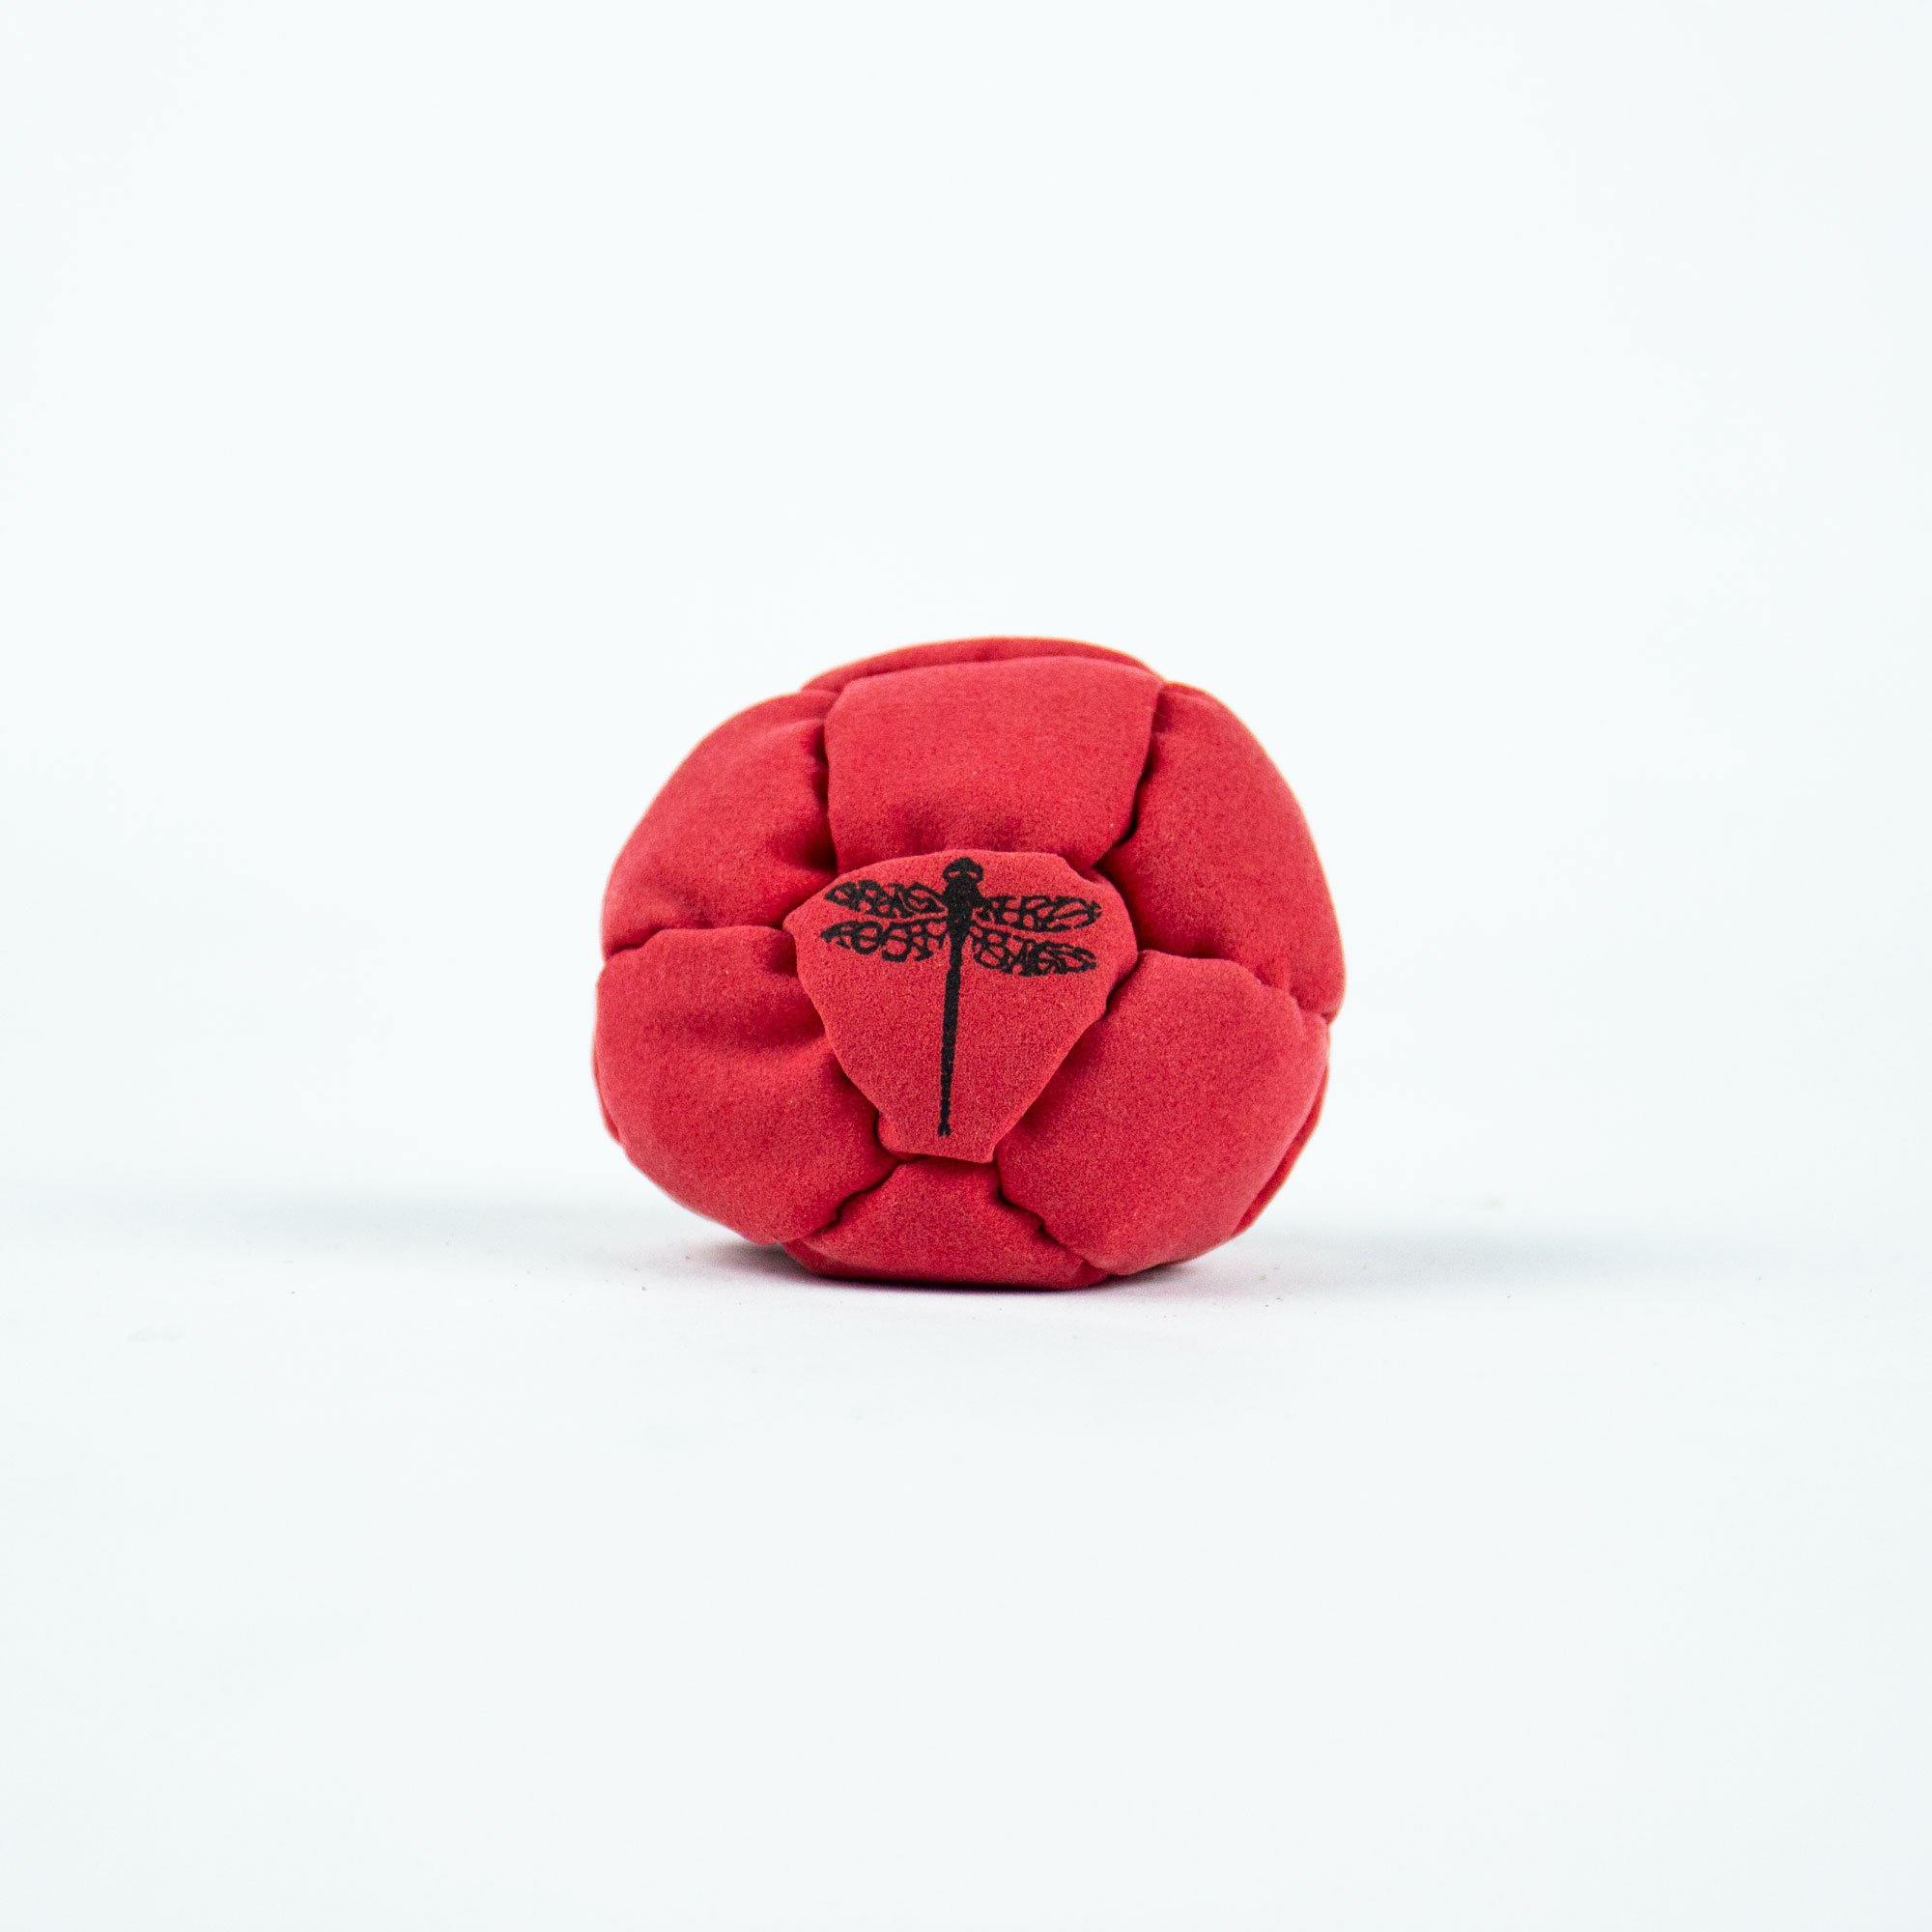 Dragonfly Footbags All Red Nemesis 14 Panel Sand Filled (Hacky Sack)